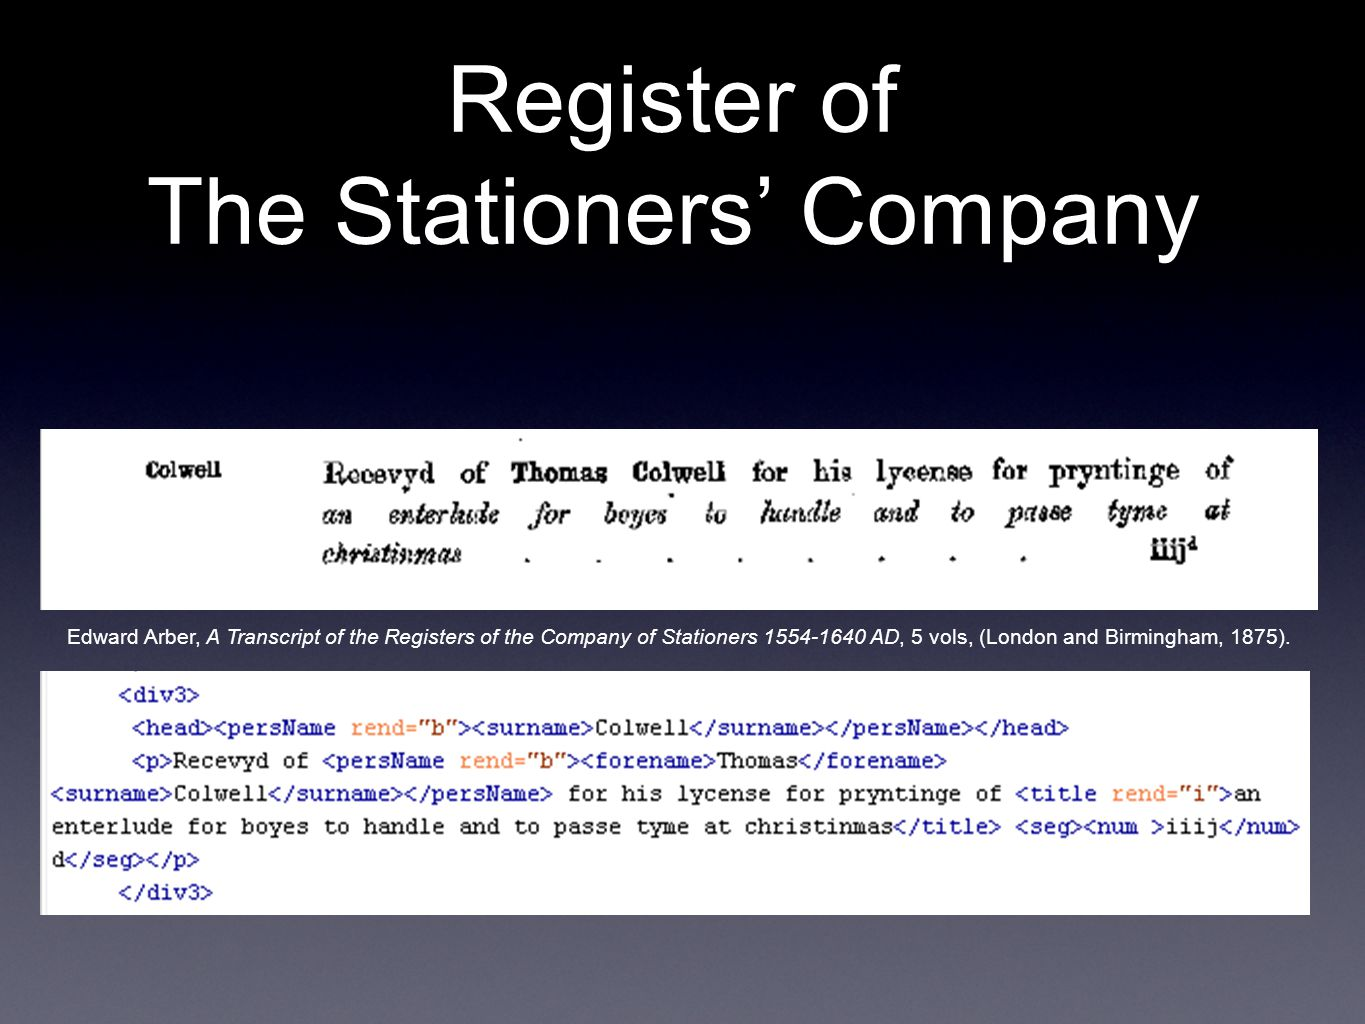 Register of The Stationers' Company Edward Arber, A Transcript of the Registers of the Company of Stationers 1554-1640 AD, 5 vols, (London and Birming